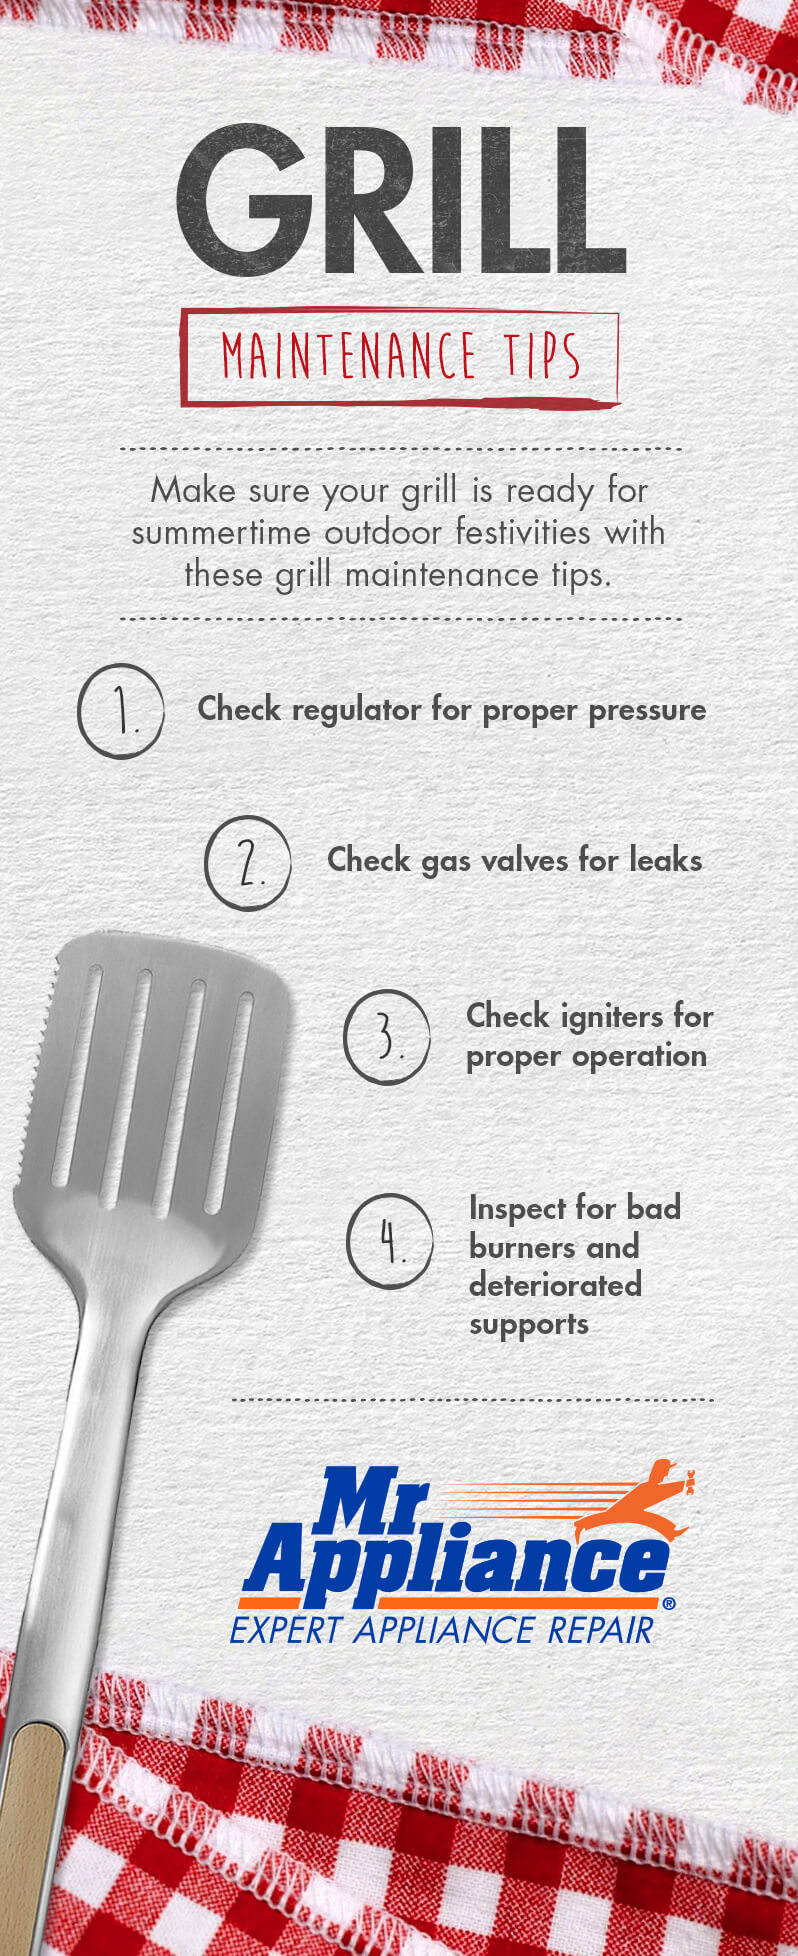 Grill maintenance tips from Mr. Appliance